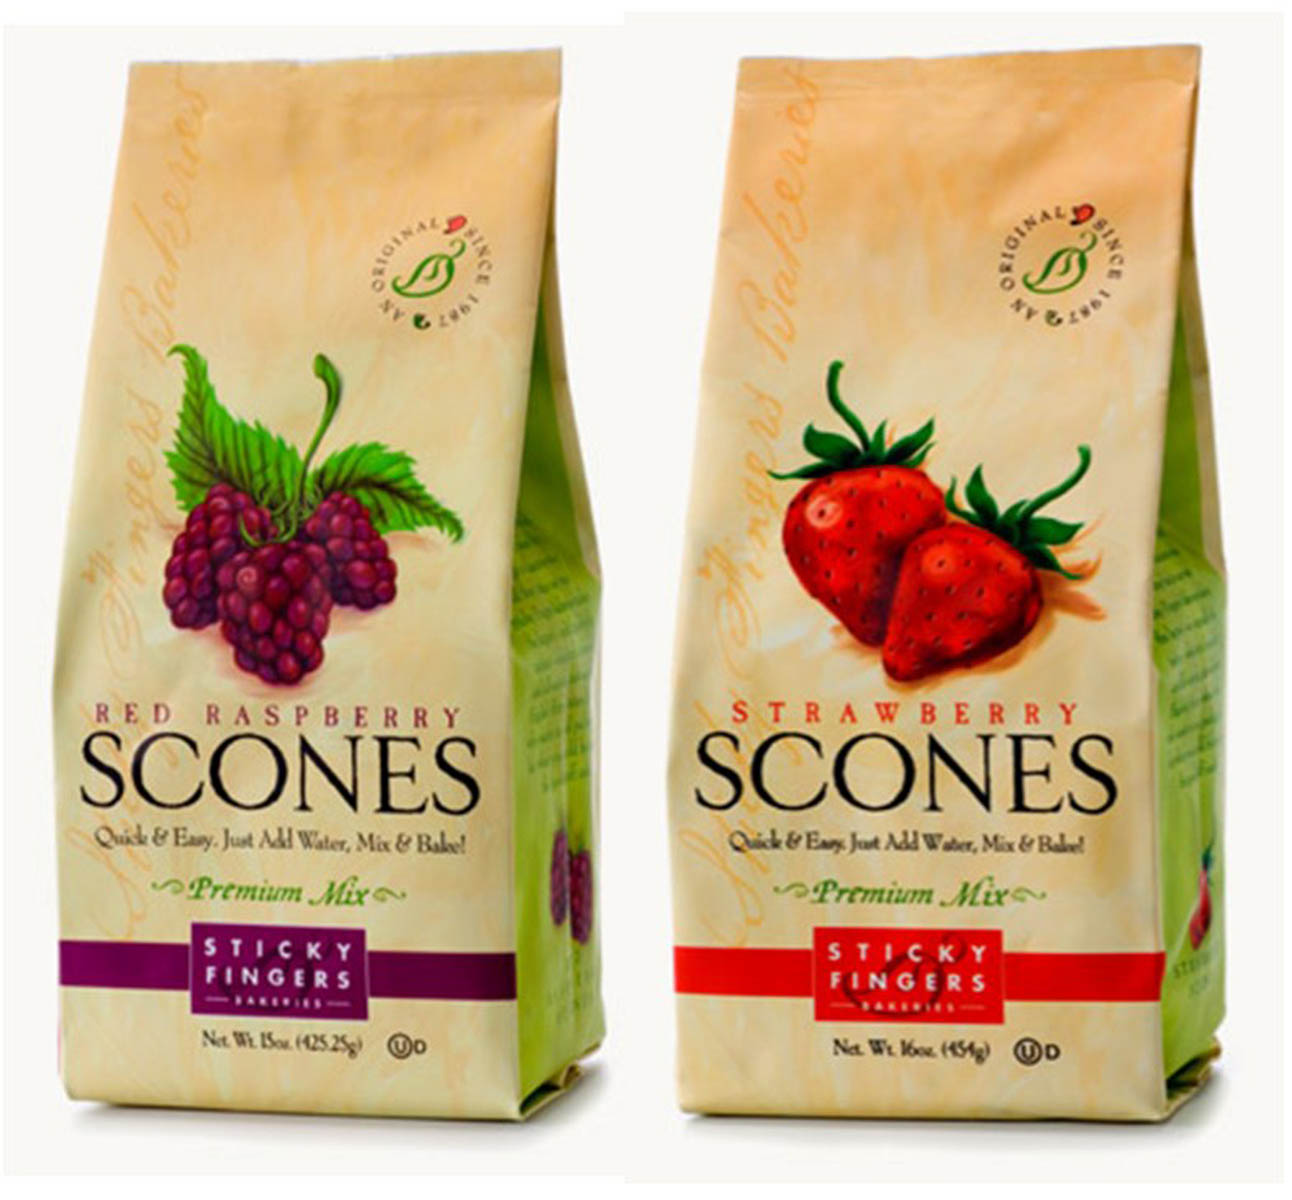 Sticky Fingers Bakeries Red Raspberry & Strawberry Premium Scones Mix 16 Oz. Set of 2 by